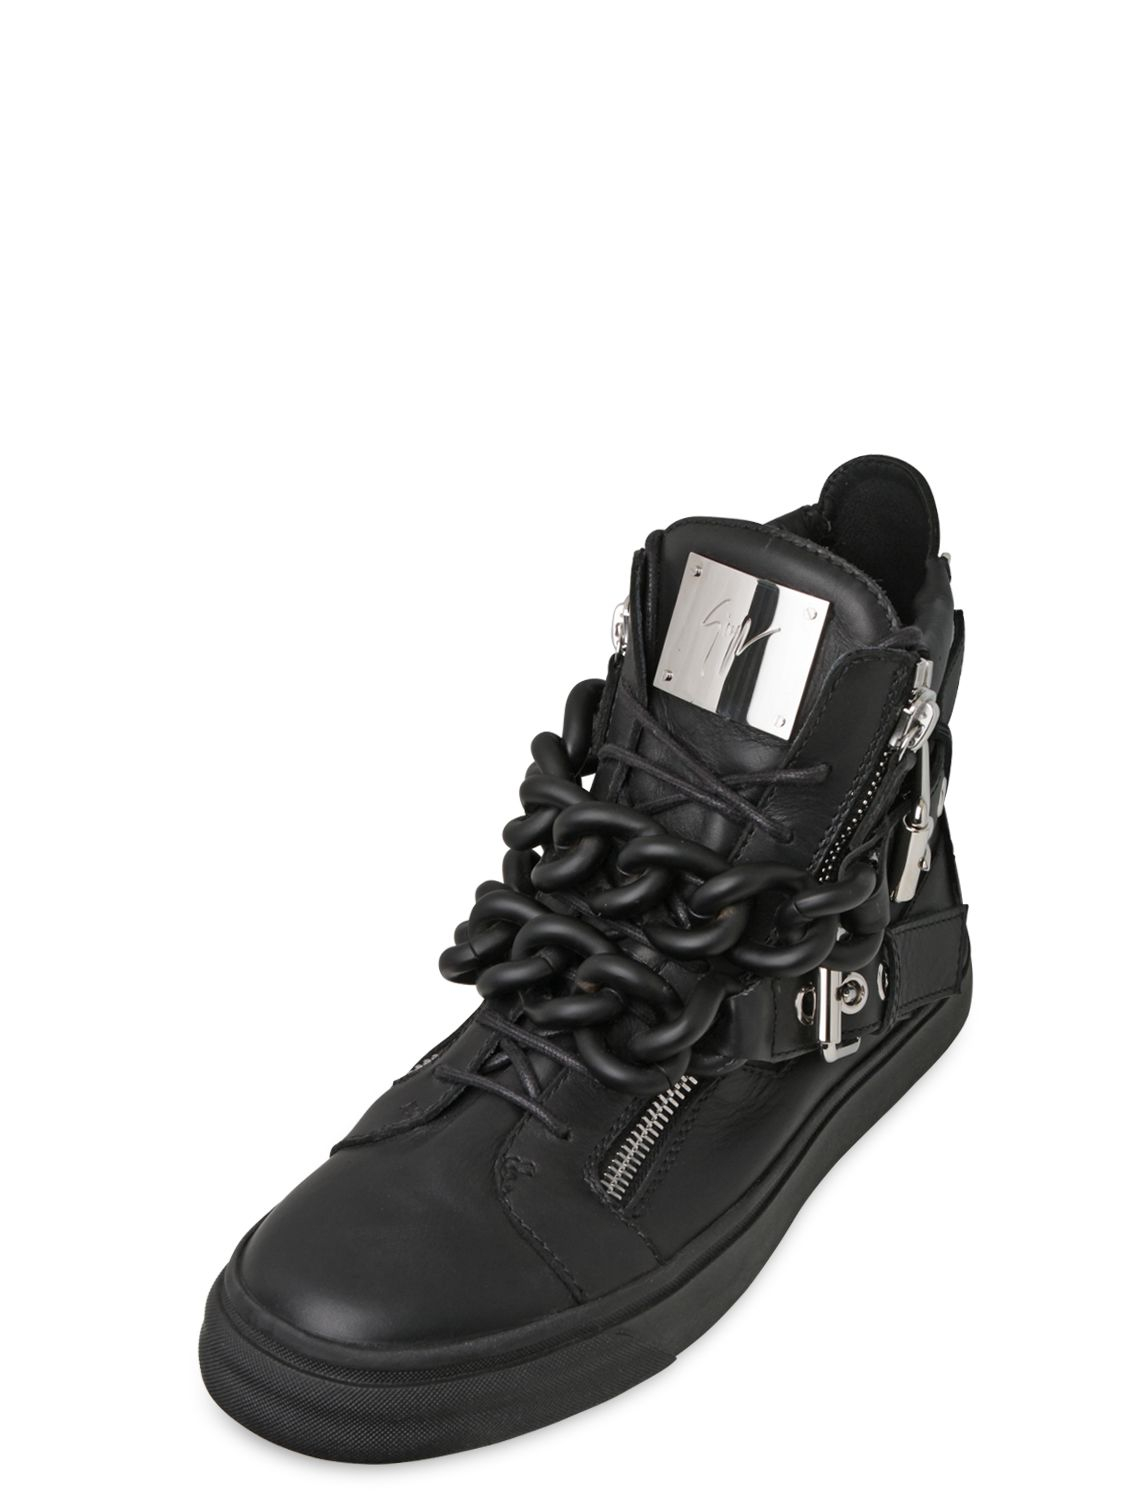 Giuseppe ZanottiDouble Zip Leather High-Top Sneakers qFVkTaD